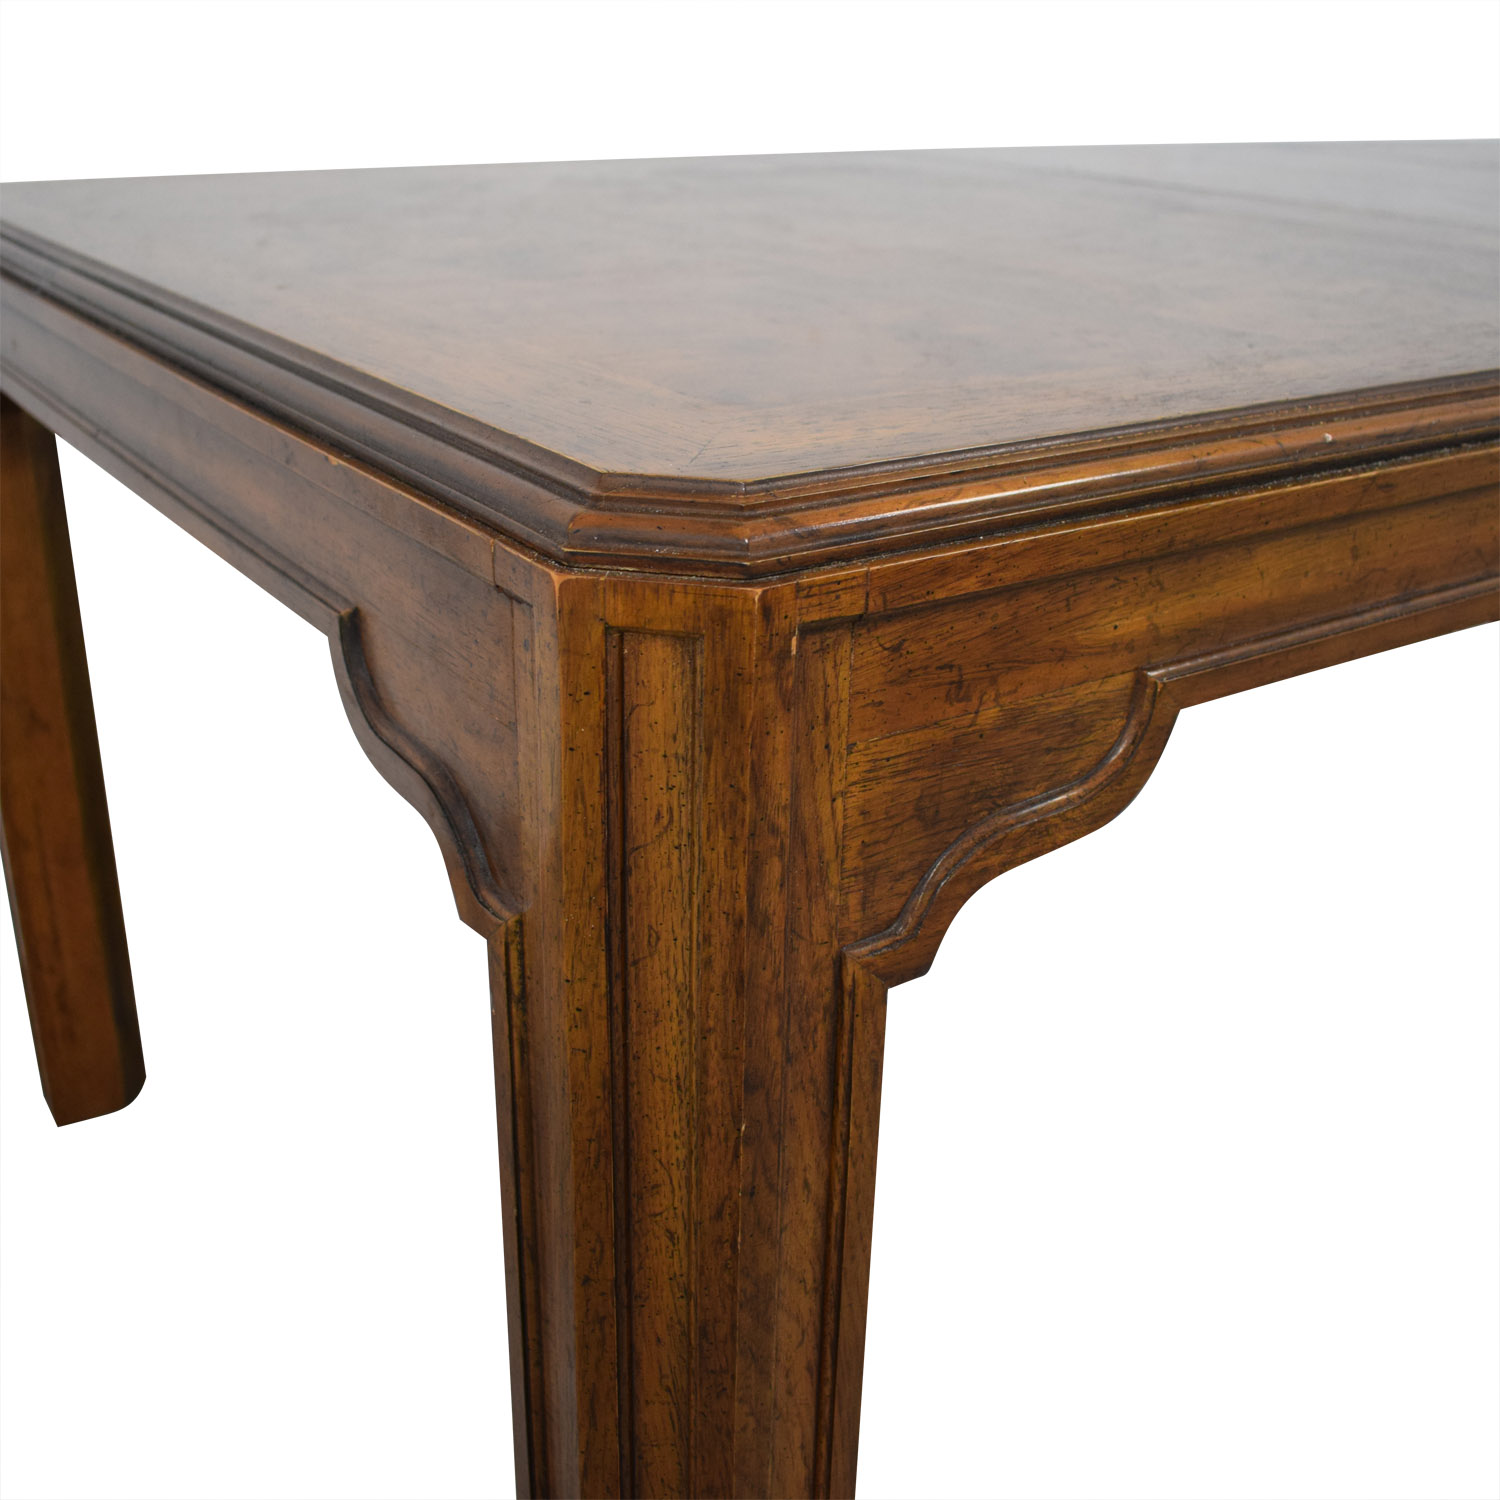 Drexel Heritage Drexel Heritage Extension Dining Table price